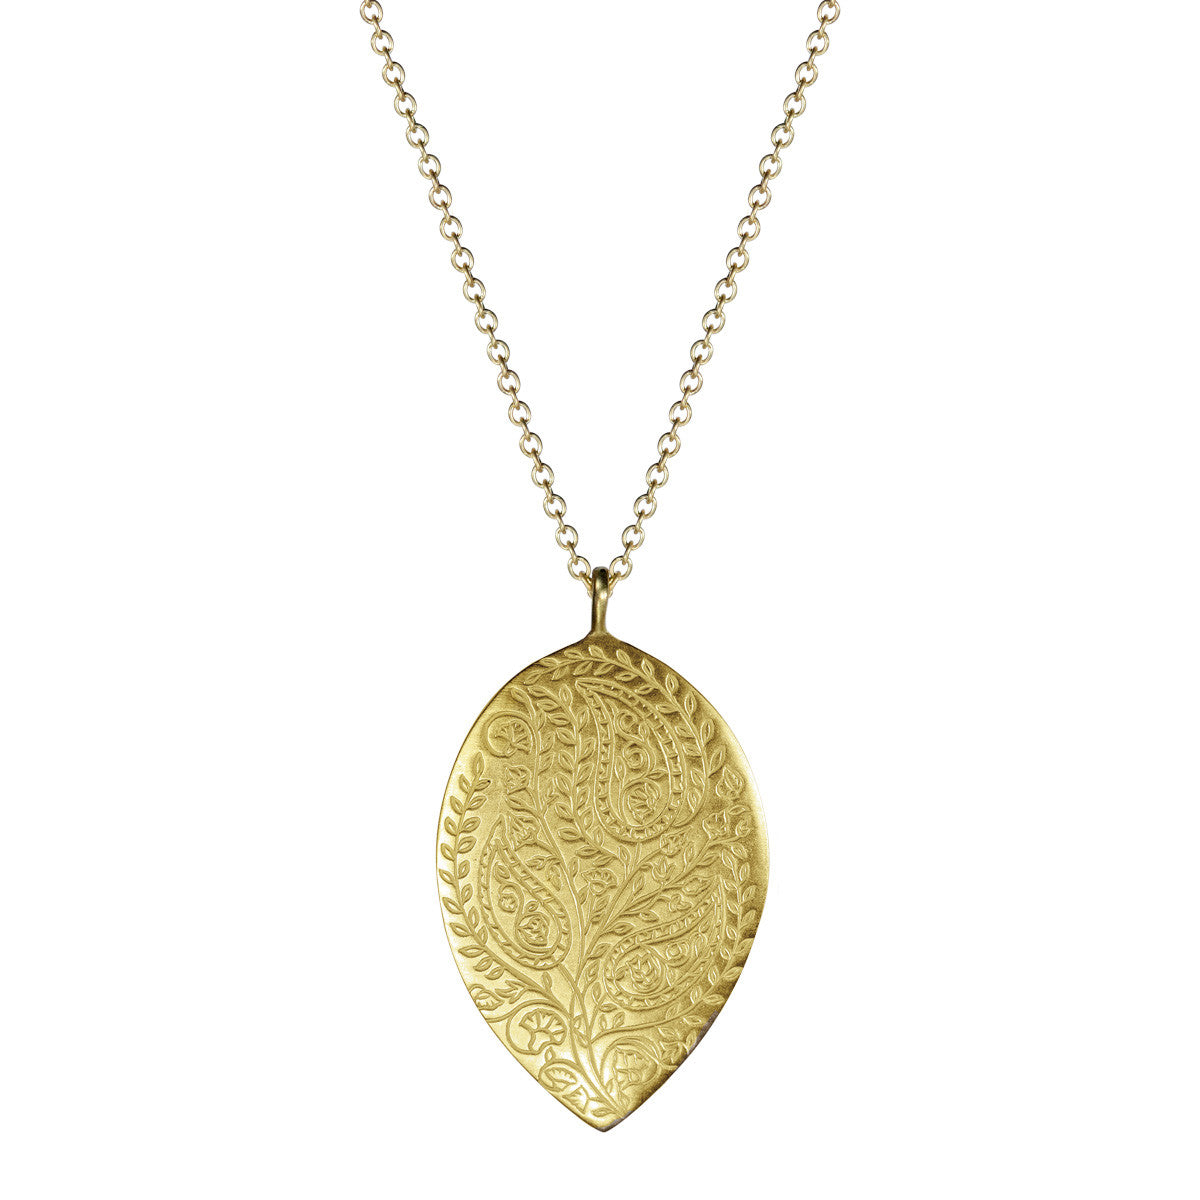 18K Gold Large Engraved Paisley Teardrop Pendant